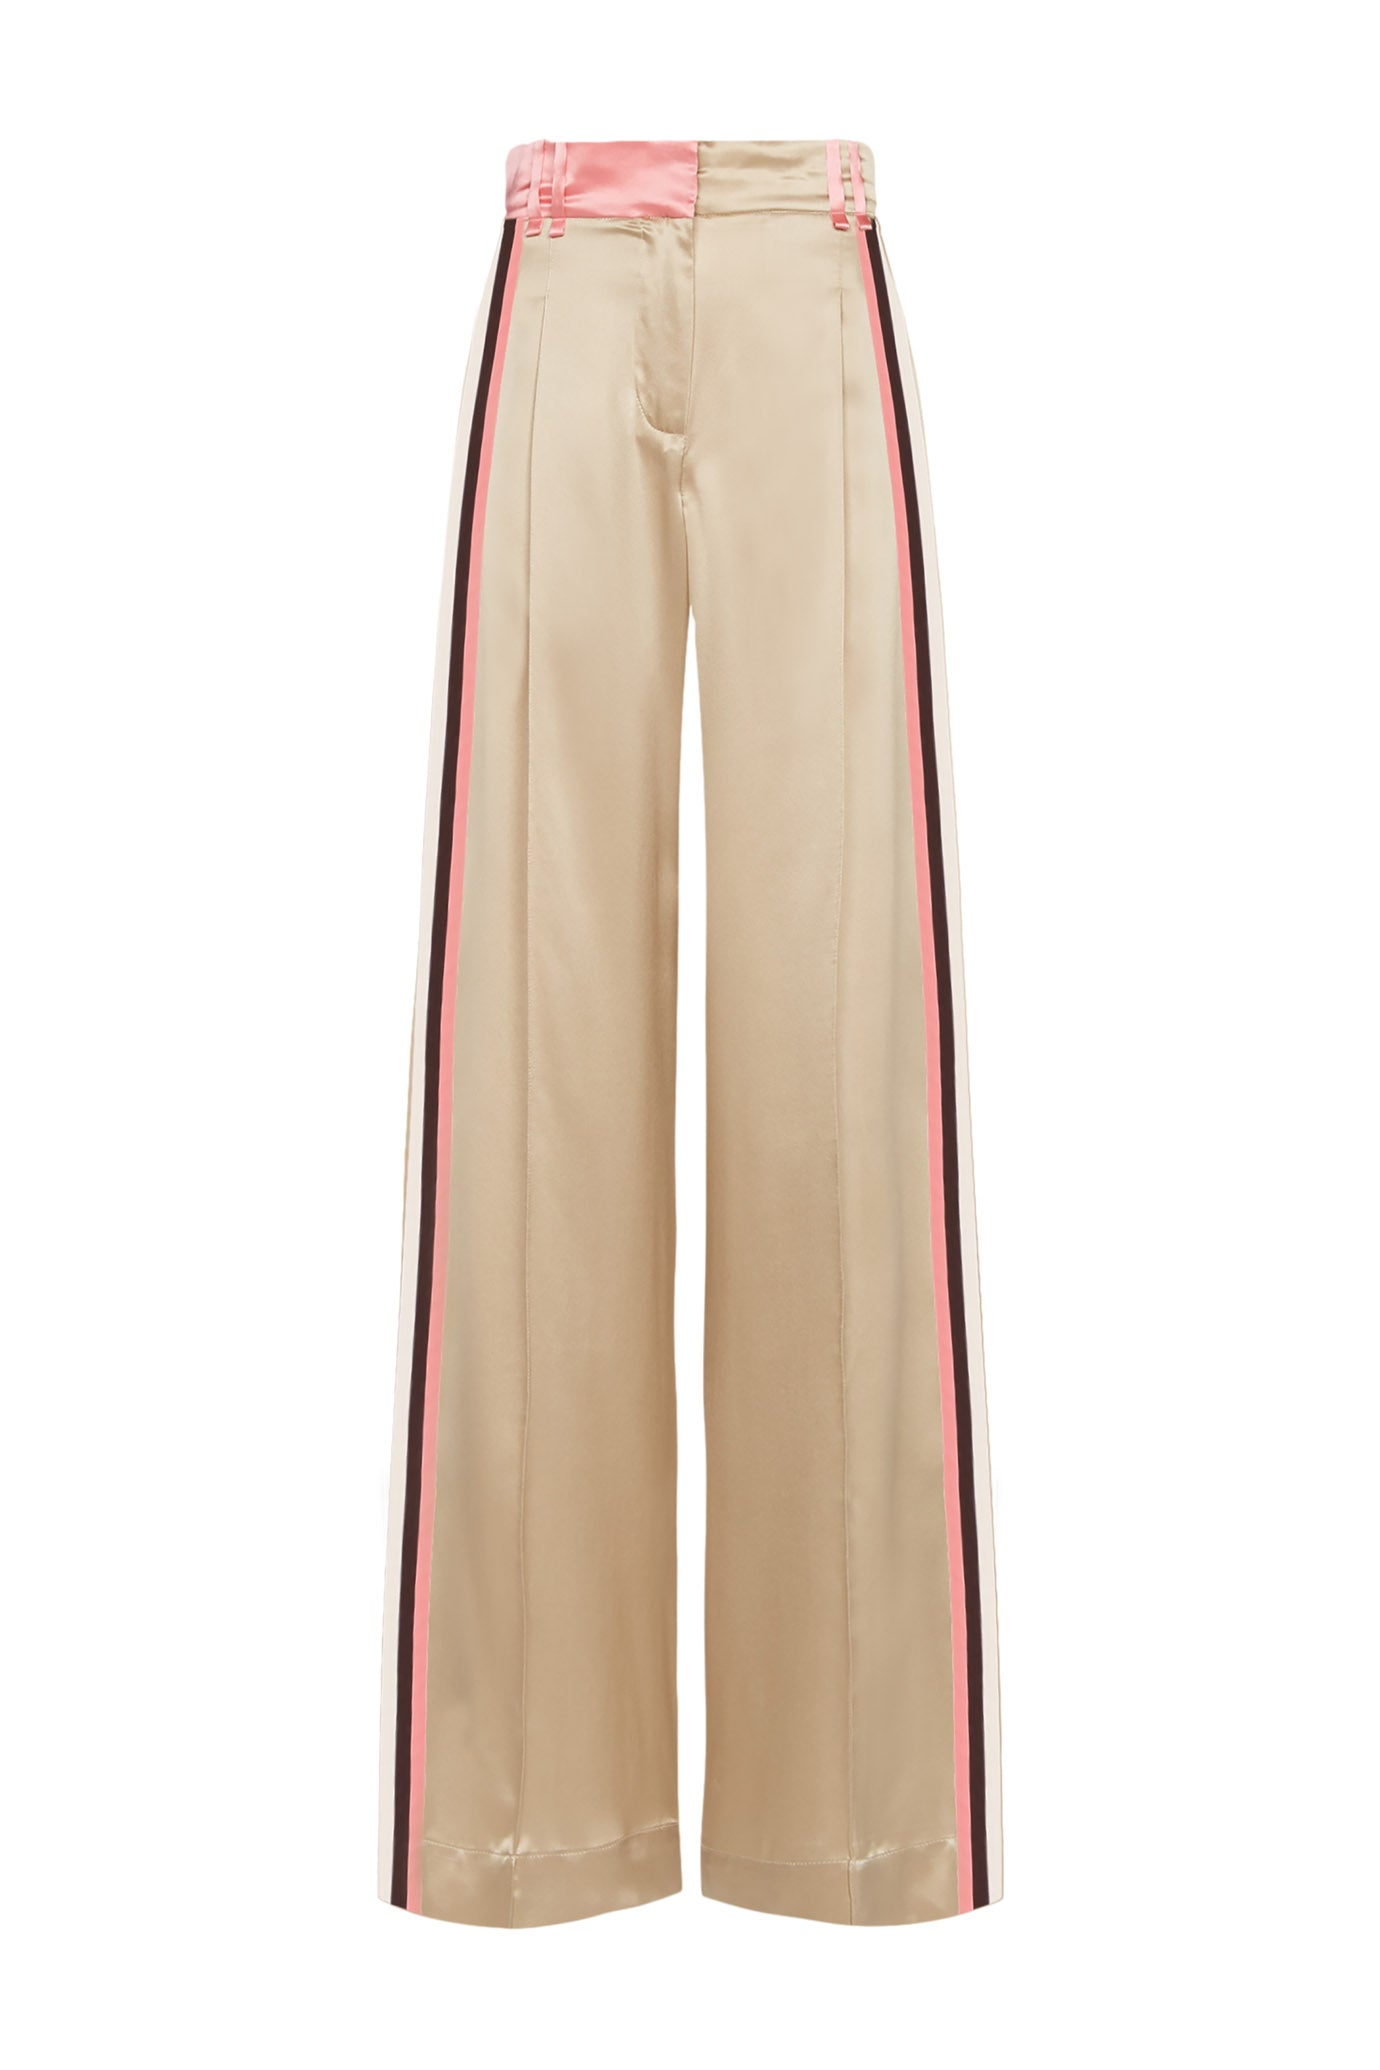 The Serena Trouser - Chinchilla Beige & Salmon Pink Silk - SERENA BUTE